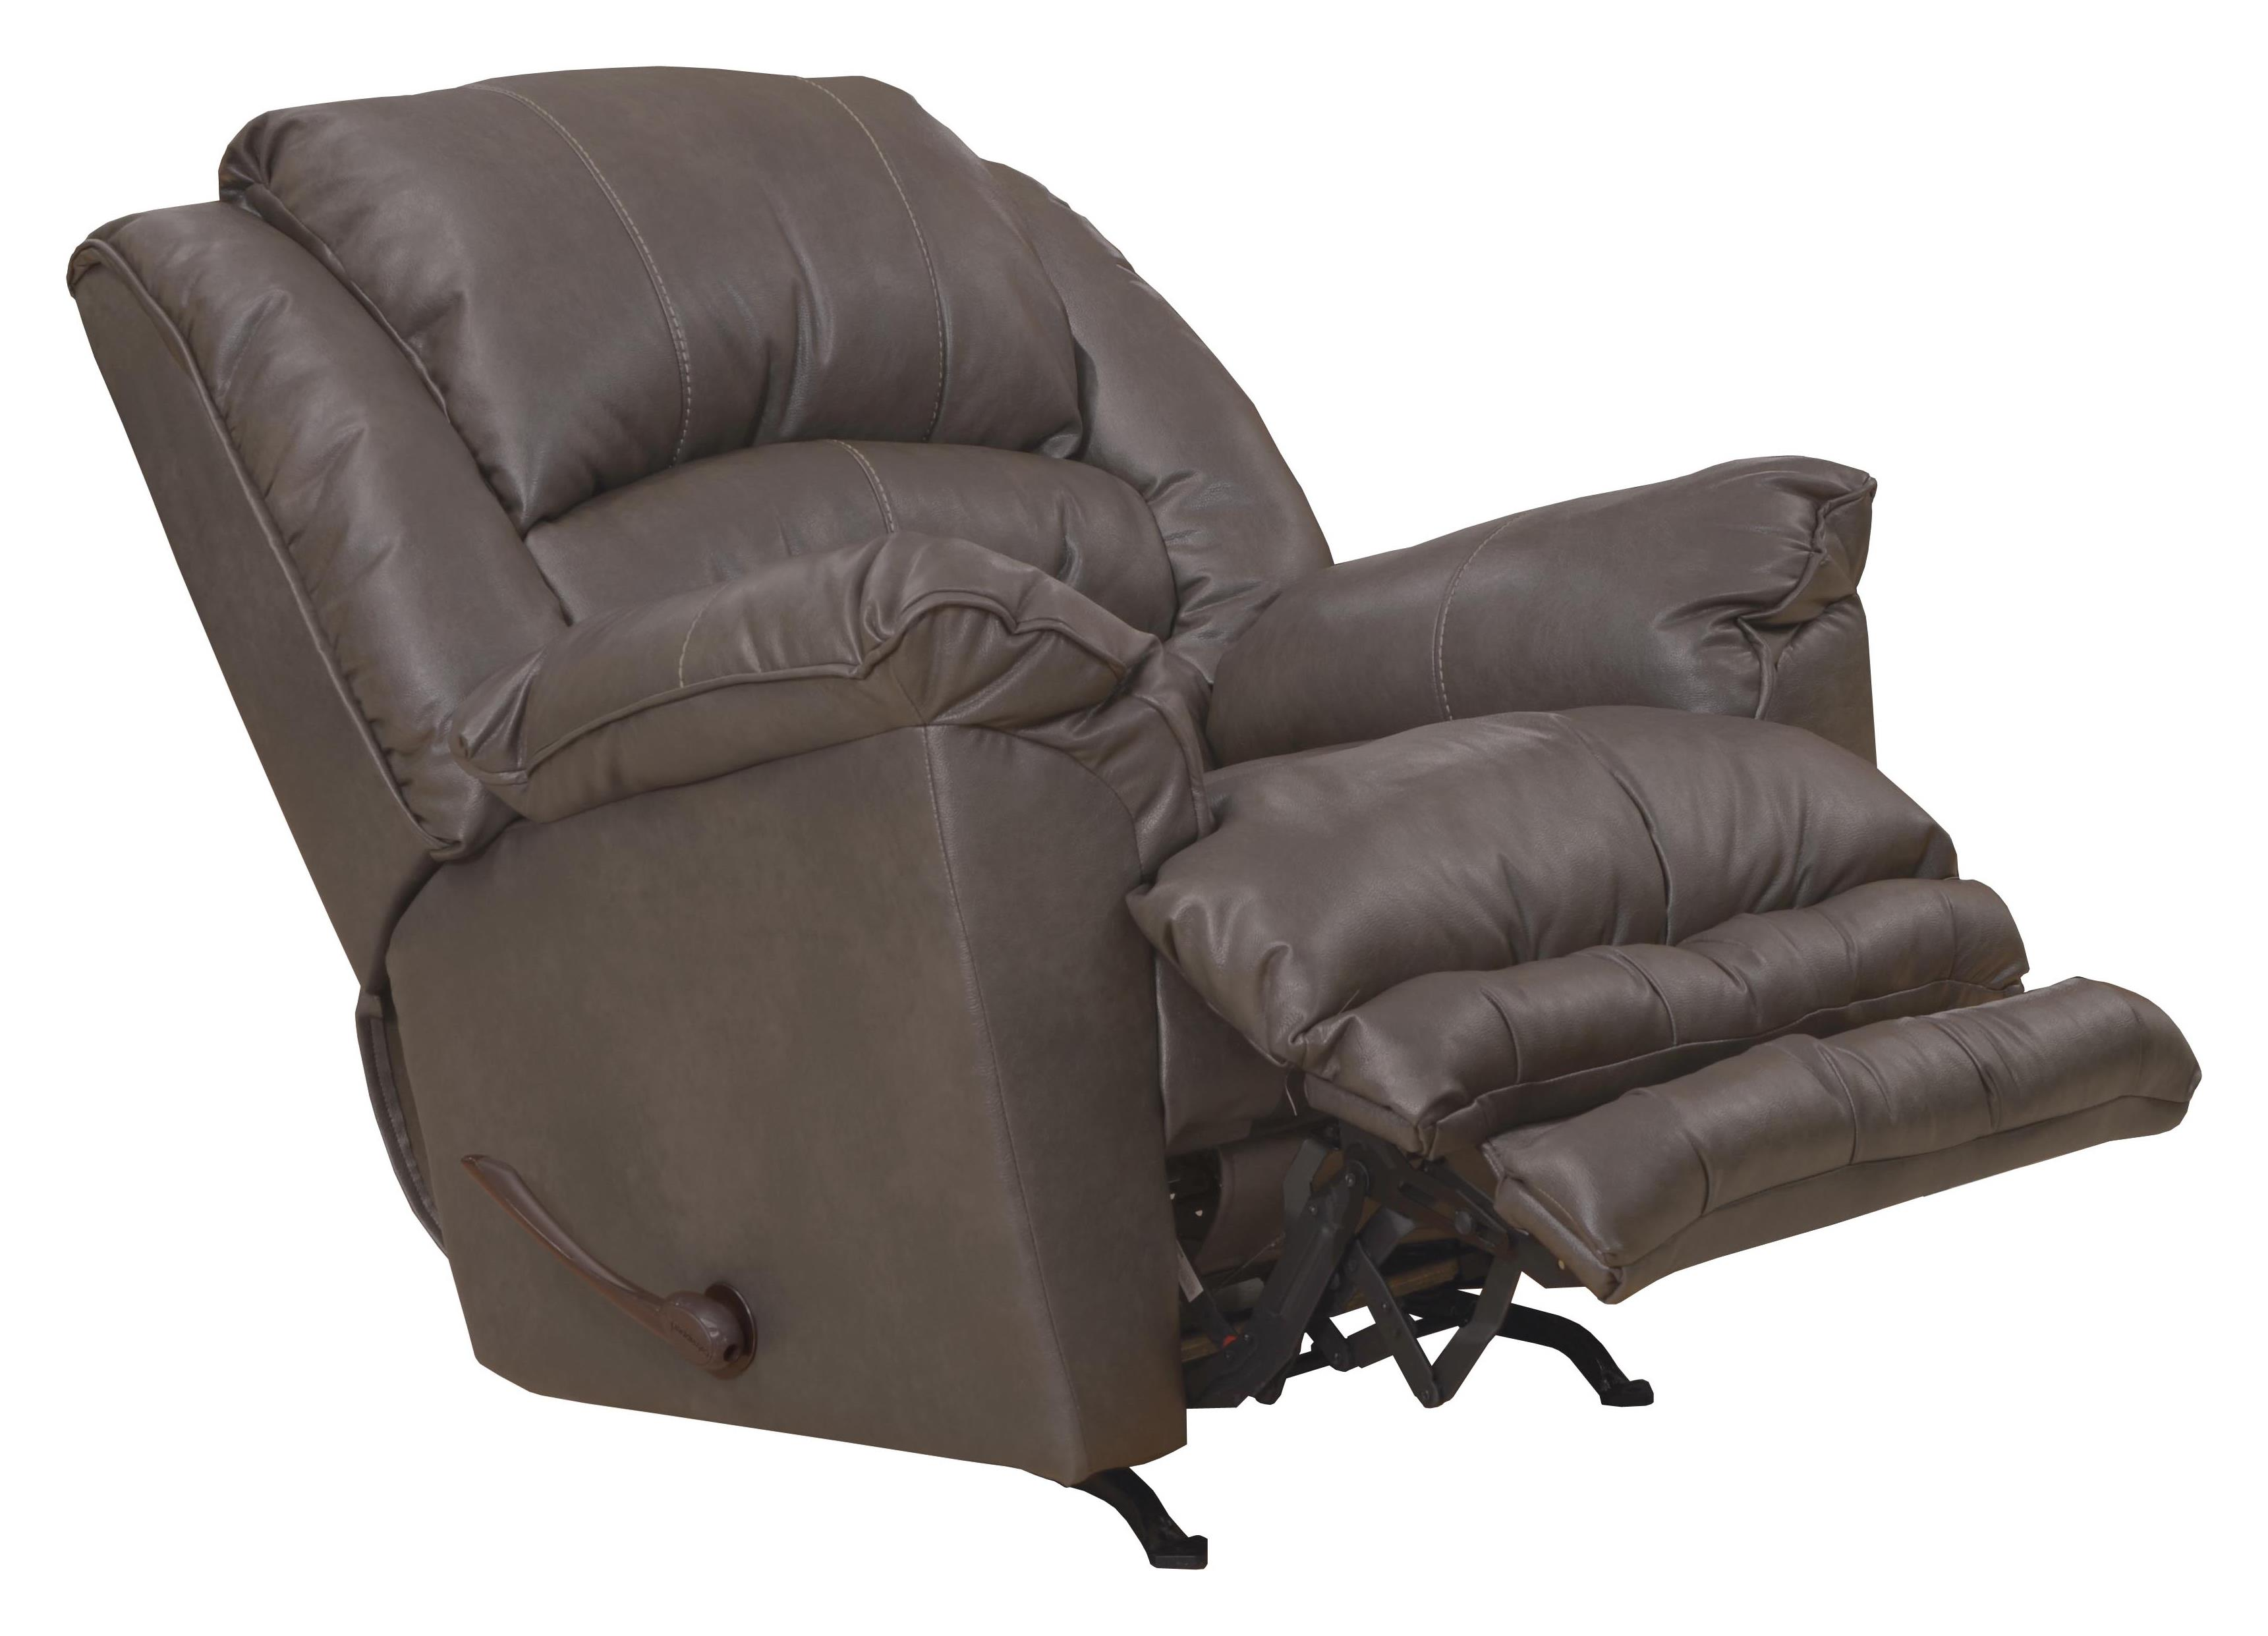 Catnapper Chair Motion Chairs And Recliners Filmore Oversized Rocker